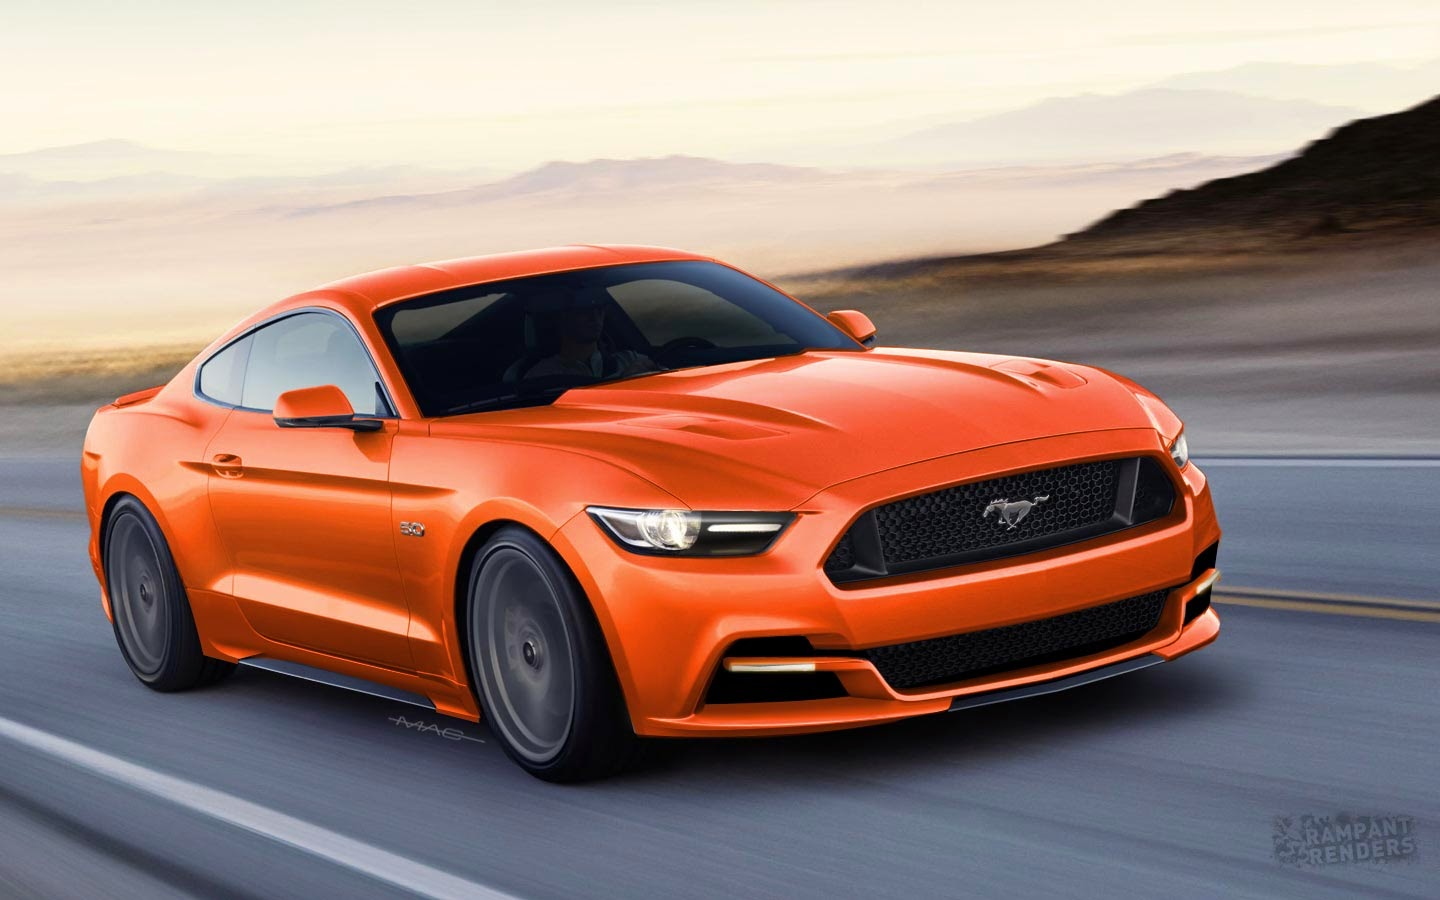 2018 Mustang Gt Review >> 2015 Ford Mustang convertible sports cars are now more powerful - Mycarzilla